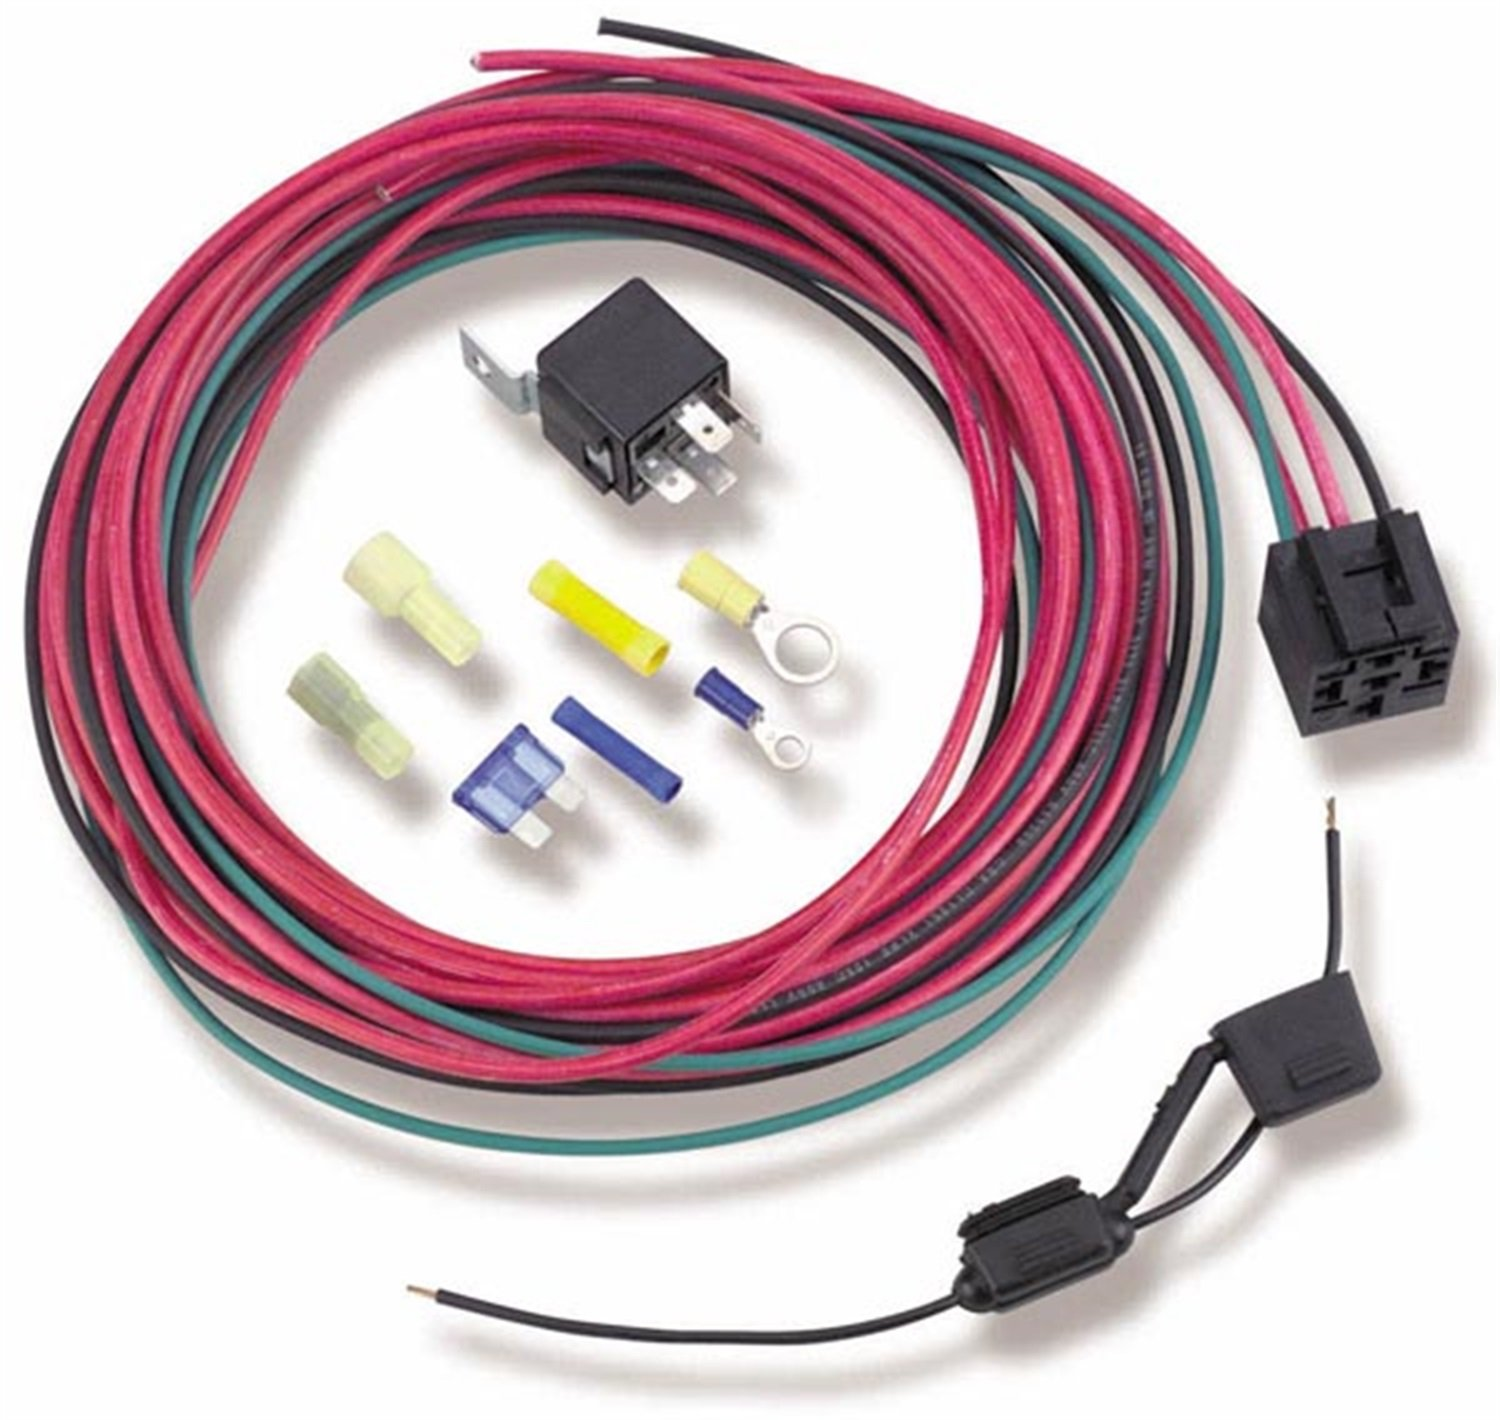 Holley 12-753 30 Amp Fuel Pump Relay Kit HOL 12-753